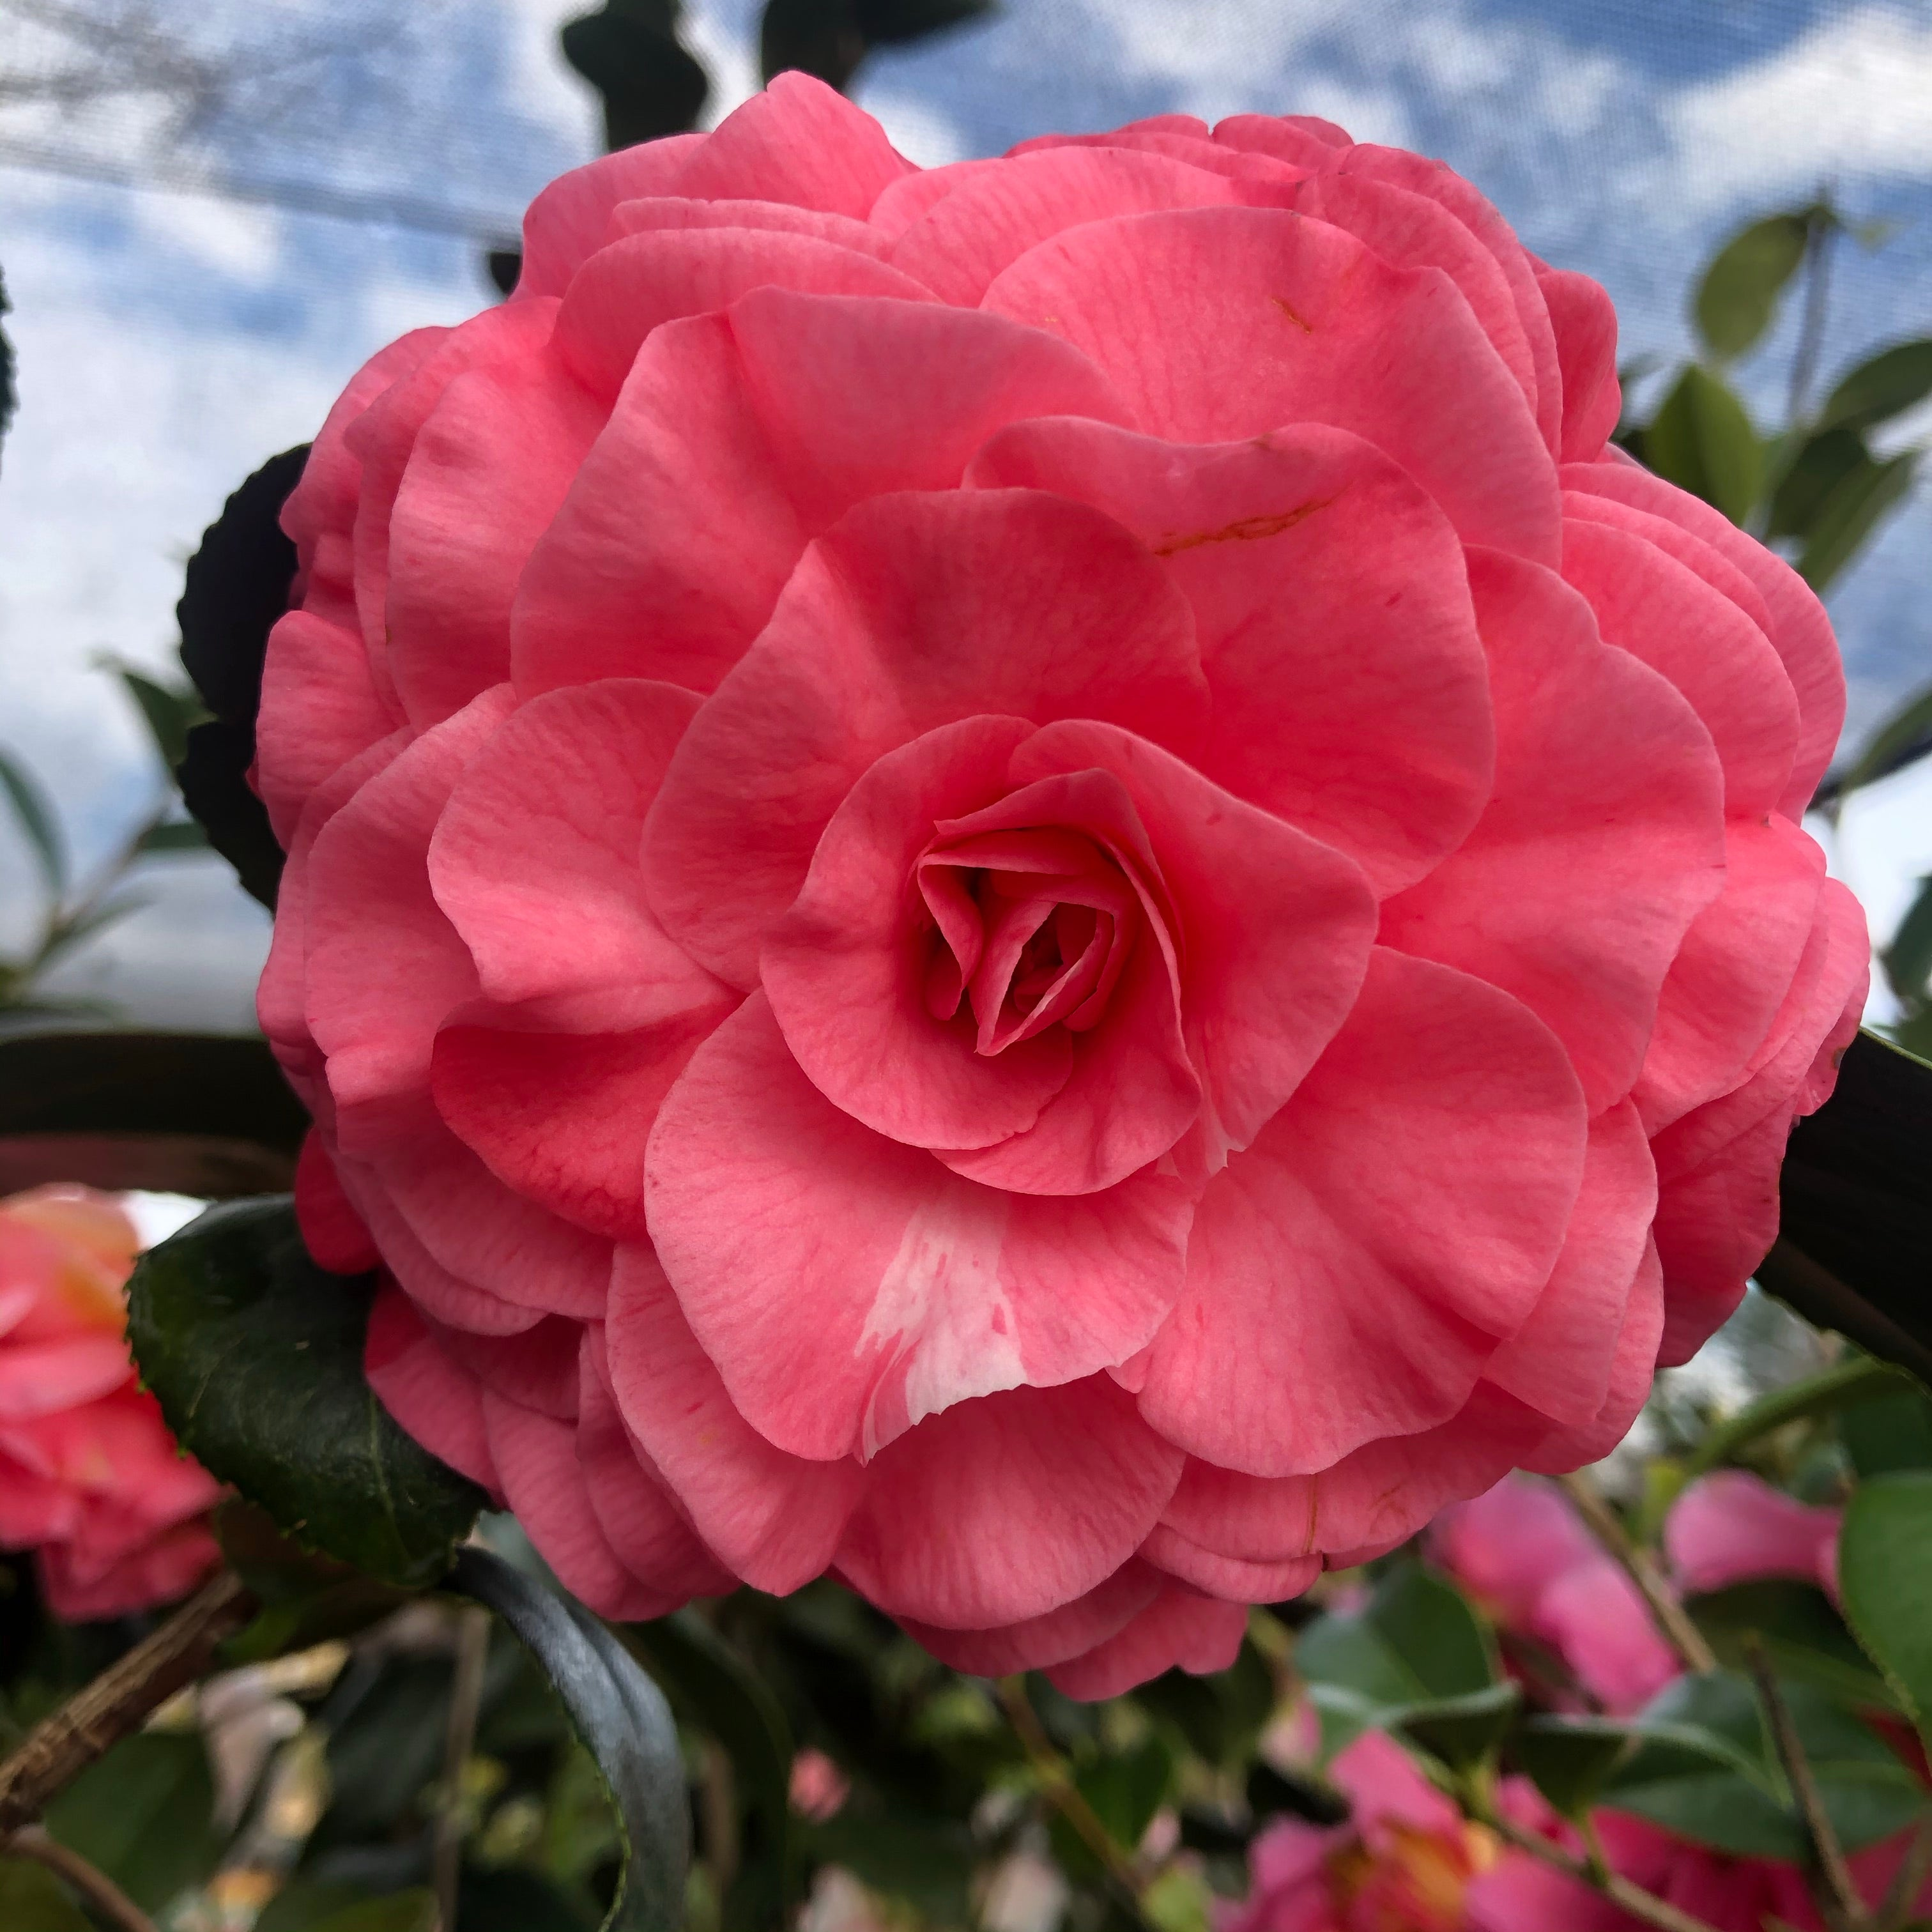 In the Pink Camellia